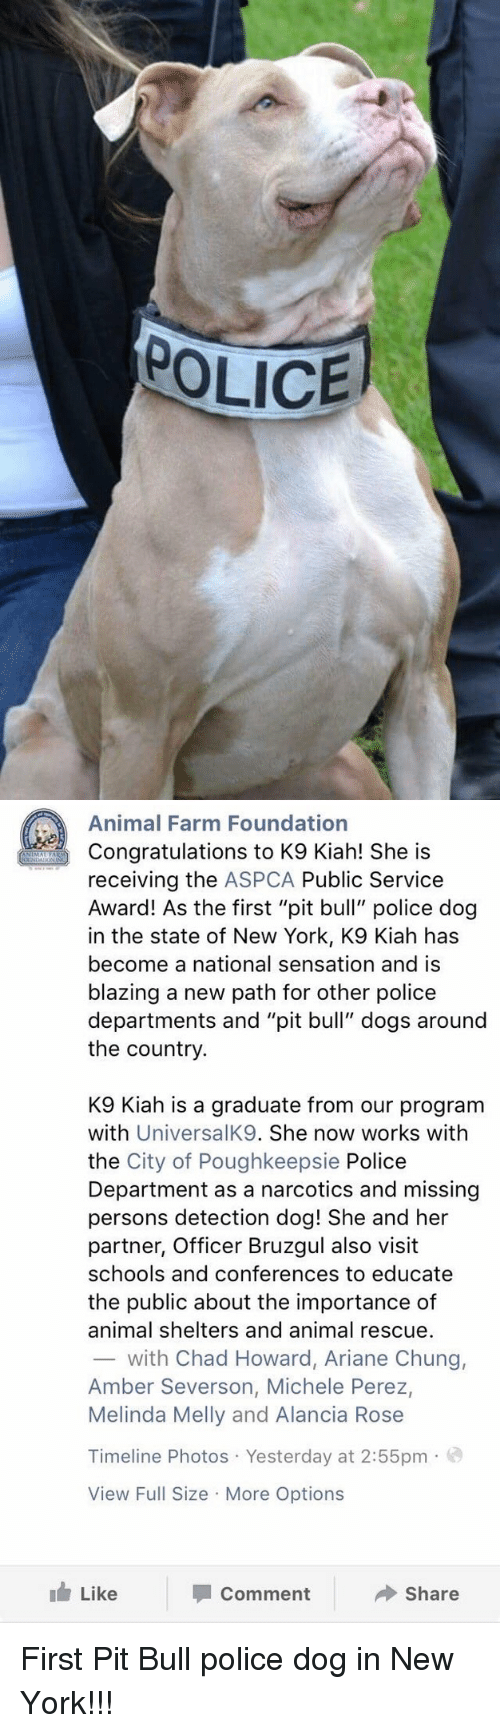 "Aspca: POLICE   Animal Farm Foundation  Congratulations to K9 Kiah! She is  receiving the ASPCA Public Service  Award! As the first ""pit bull"" police dog  in the state of New York, K9 Kiah has  become a national sensation and is  blazing a new path for other police  departments and ""pit bull"" dogs around  the country.  K9 lah is a graduate from our program  with  UniversalK9. She now works with  the City of Poughkeepsie Police  Department as a narcotics and missing  persons detection dog! She and her  partner, Officer Bruzgul also visit  schools and conferences to educate  the public about the importance of  animal shelters and animal rescue.  with Chad Howard, Ariane Chung,  Amber Severson, Michele Perez,  Melinda Melly and Alancia Rose  Timeline Photos Yesterday at 2:55pm  o  View Full Size More Options  Like  Share  Comment First Pit Bull police dog in New York!!!"